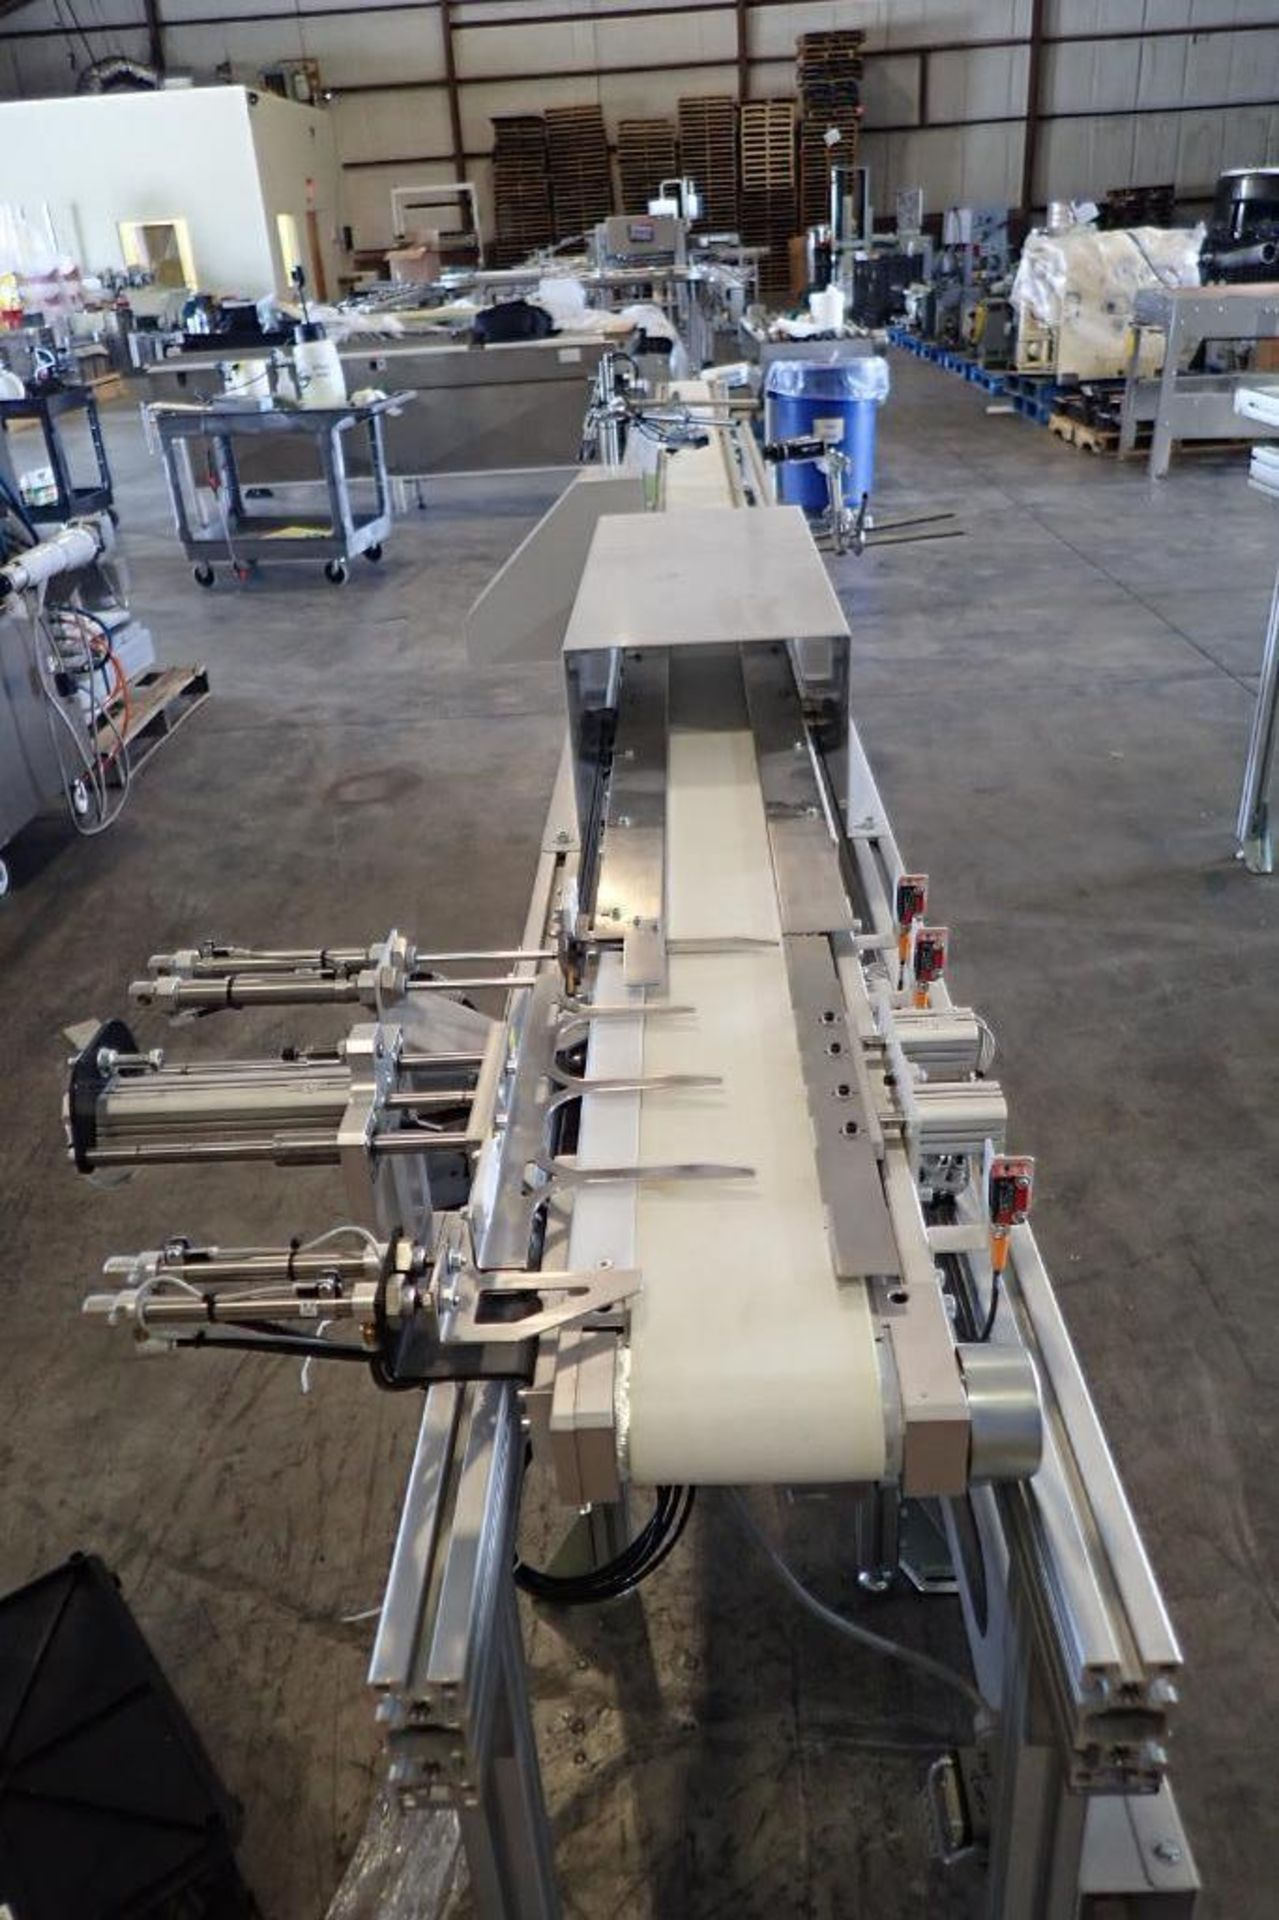 Lot 41 - 2015 Whittmann robotic inter molded label placing system, robot type W837-0138, article number